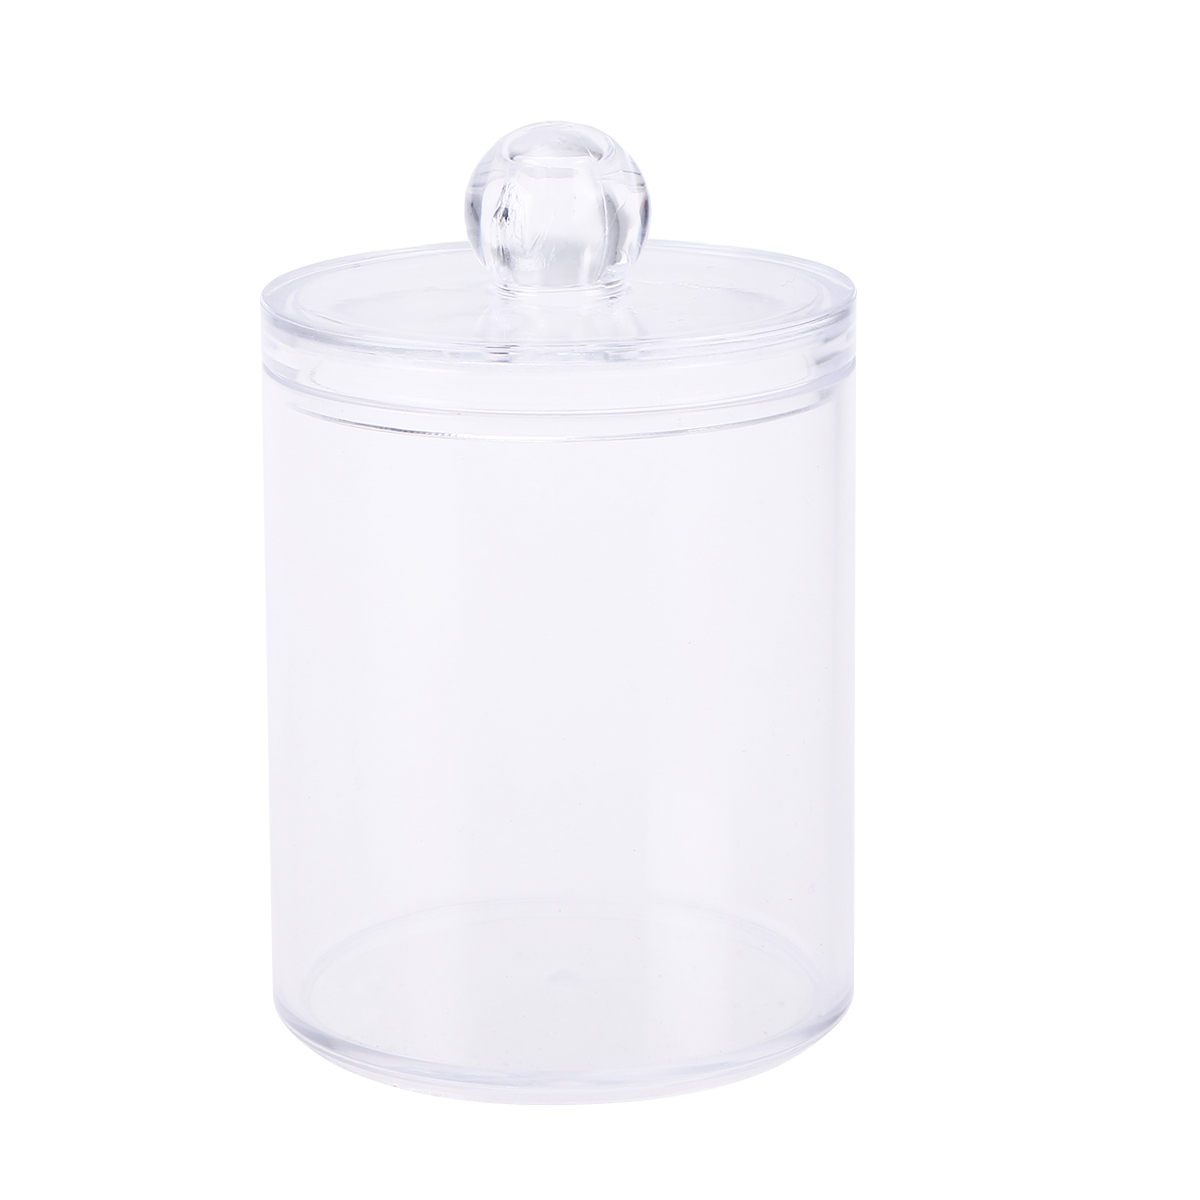 Plastic Canister Clear Round Cosmetics Jewelry Cotton Ball Swab Makeup Holder Box Container Storage Case Organizer